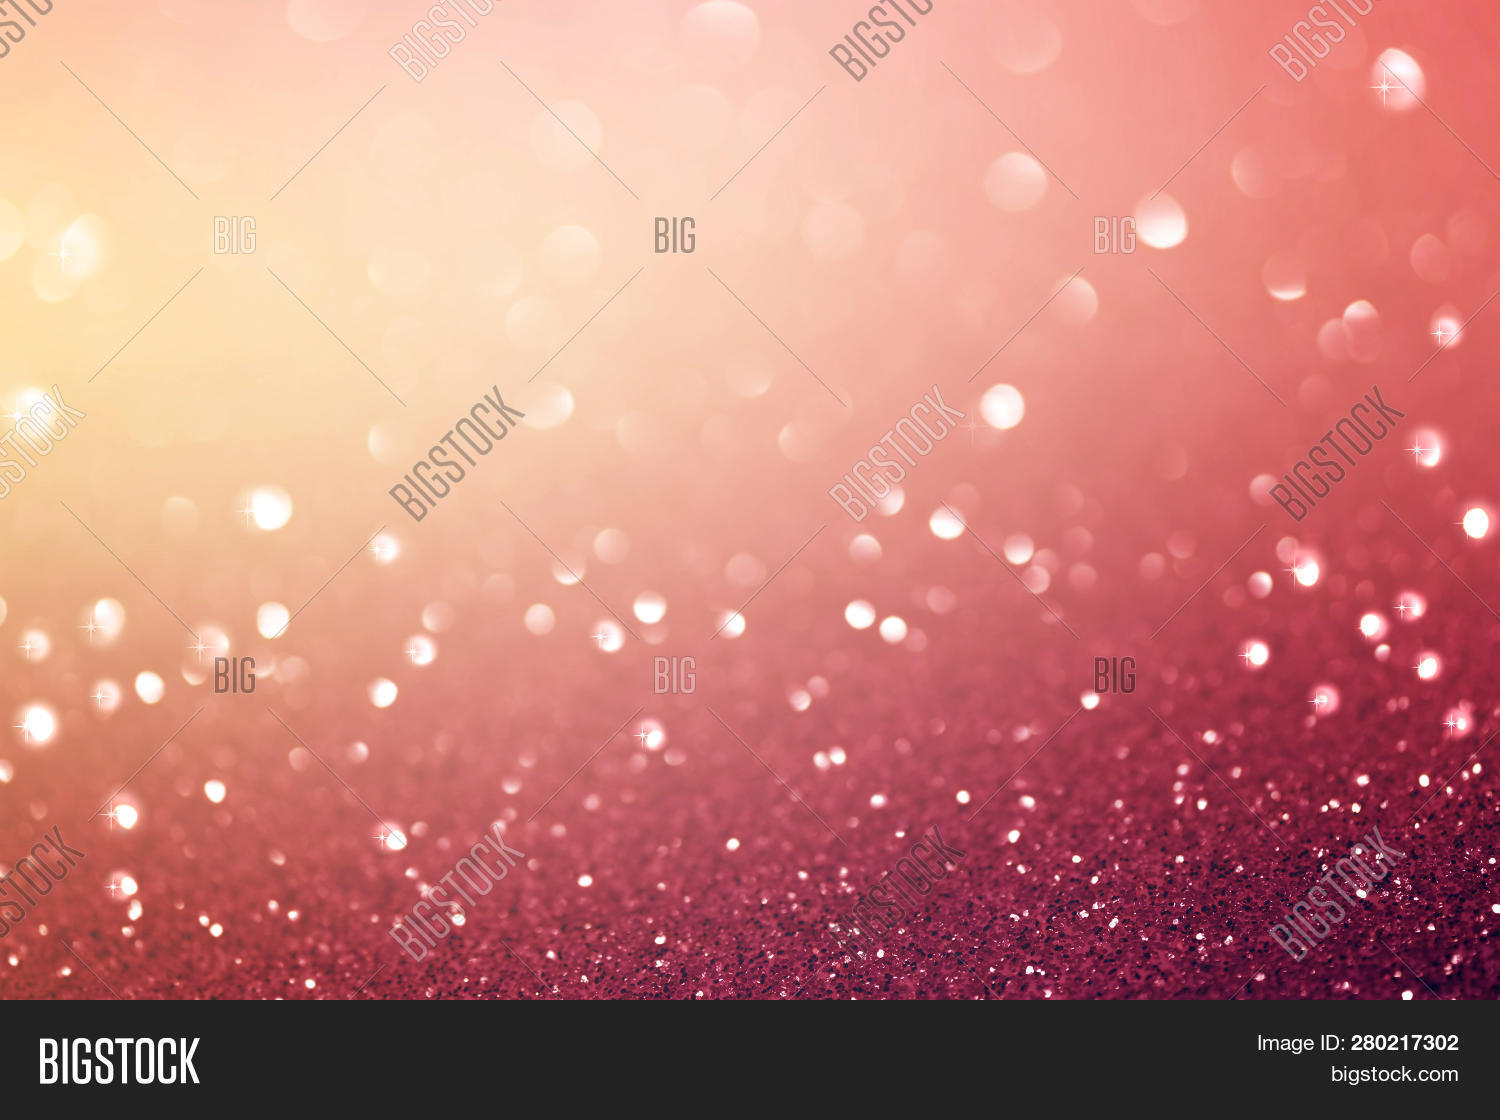 Christmas,abstract,background,beige,blink,blur,blurred,blurry,bokeh,burst,celebration,colors,crystal,diamond,effect,elegant,glamour,glimmer,glimmering,glitter,glittering,glitz,glitzy,glow,glowing,gold,holiday,lights,magic,pastel,pink,refocused,shimmer,shimmering,shine,shiny,spangle,sparkle,sparkly,spring,summer,trendy,twinkle,winter,year